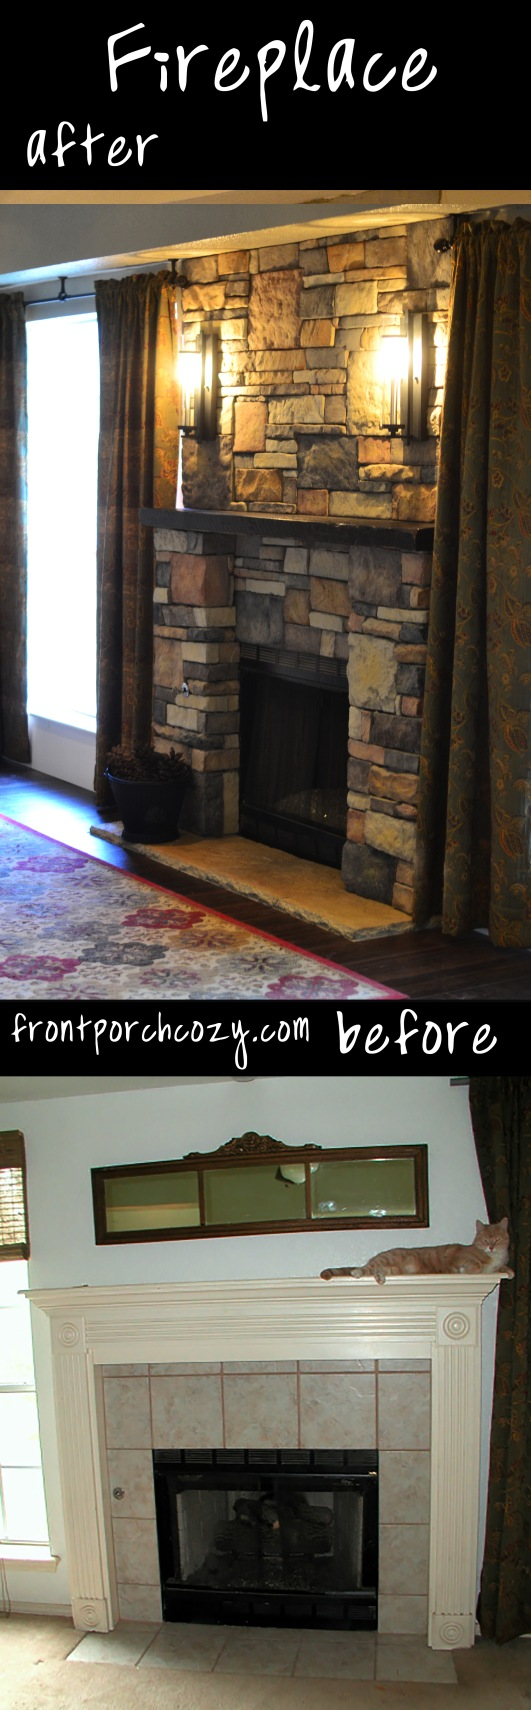 stone_fireplace_before_after